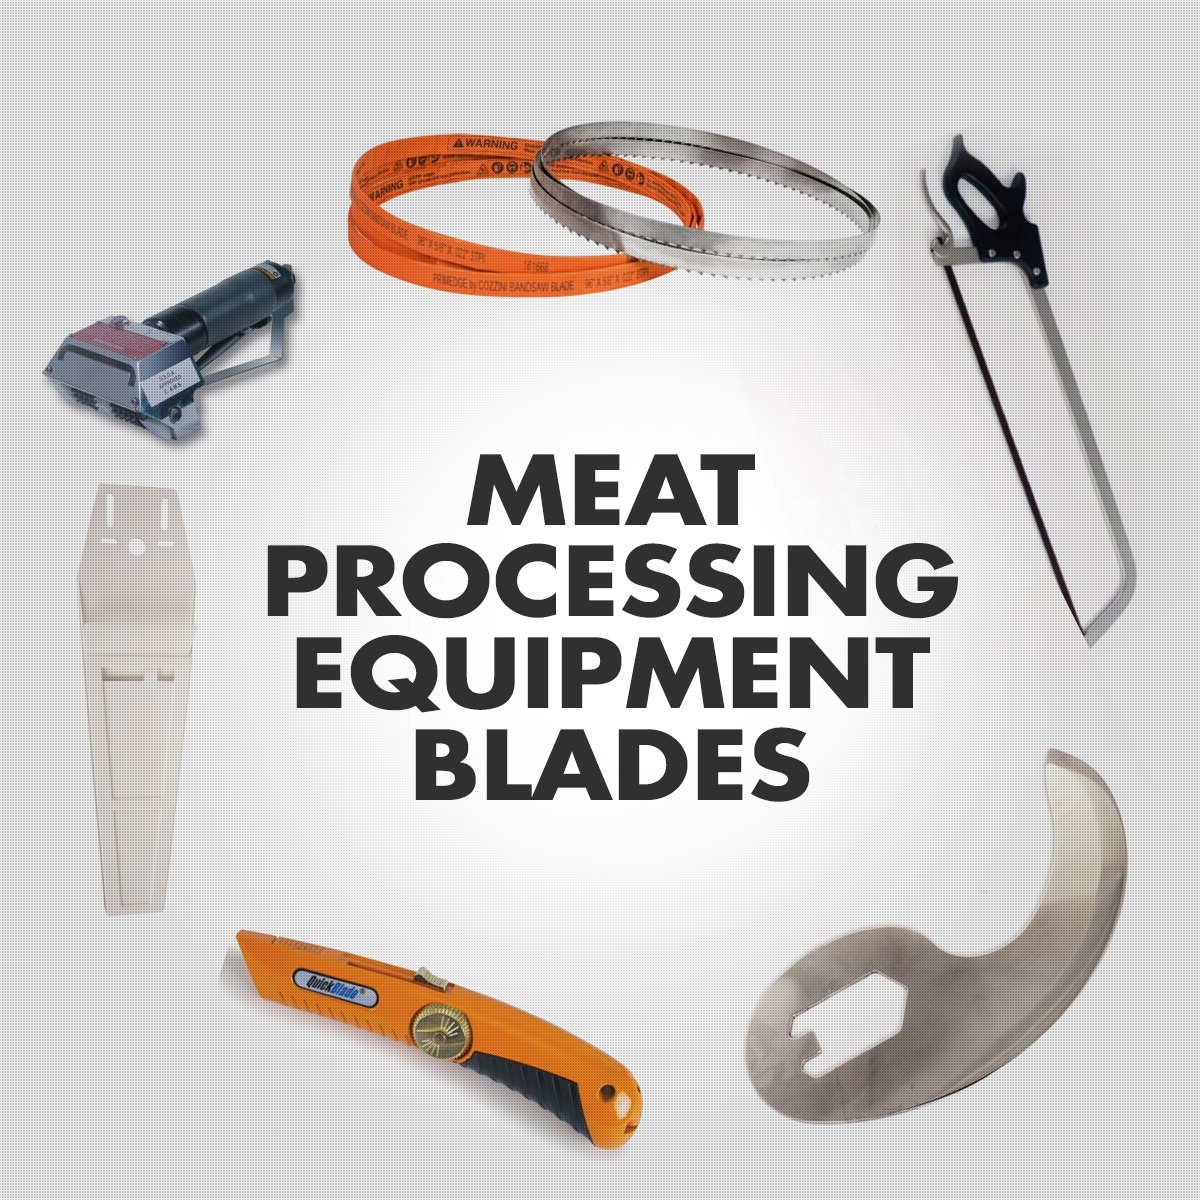 Meat Processing Equipment Blades - Bandsaw, Handsaw, Etc.